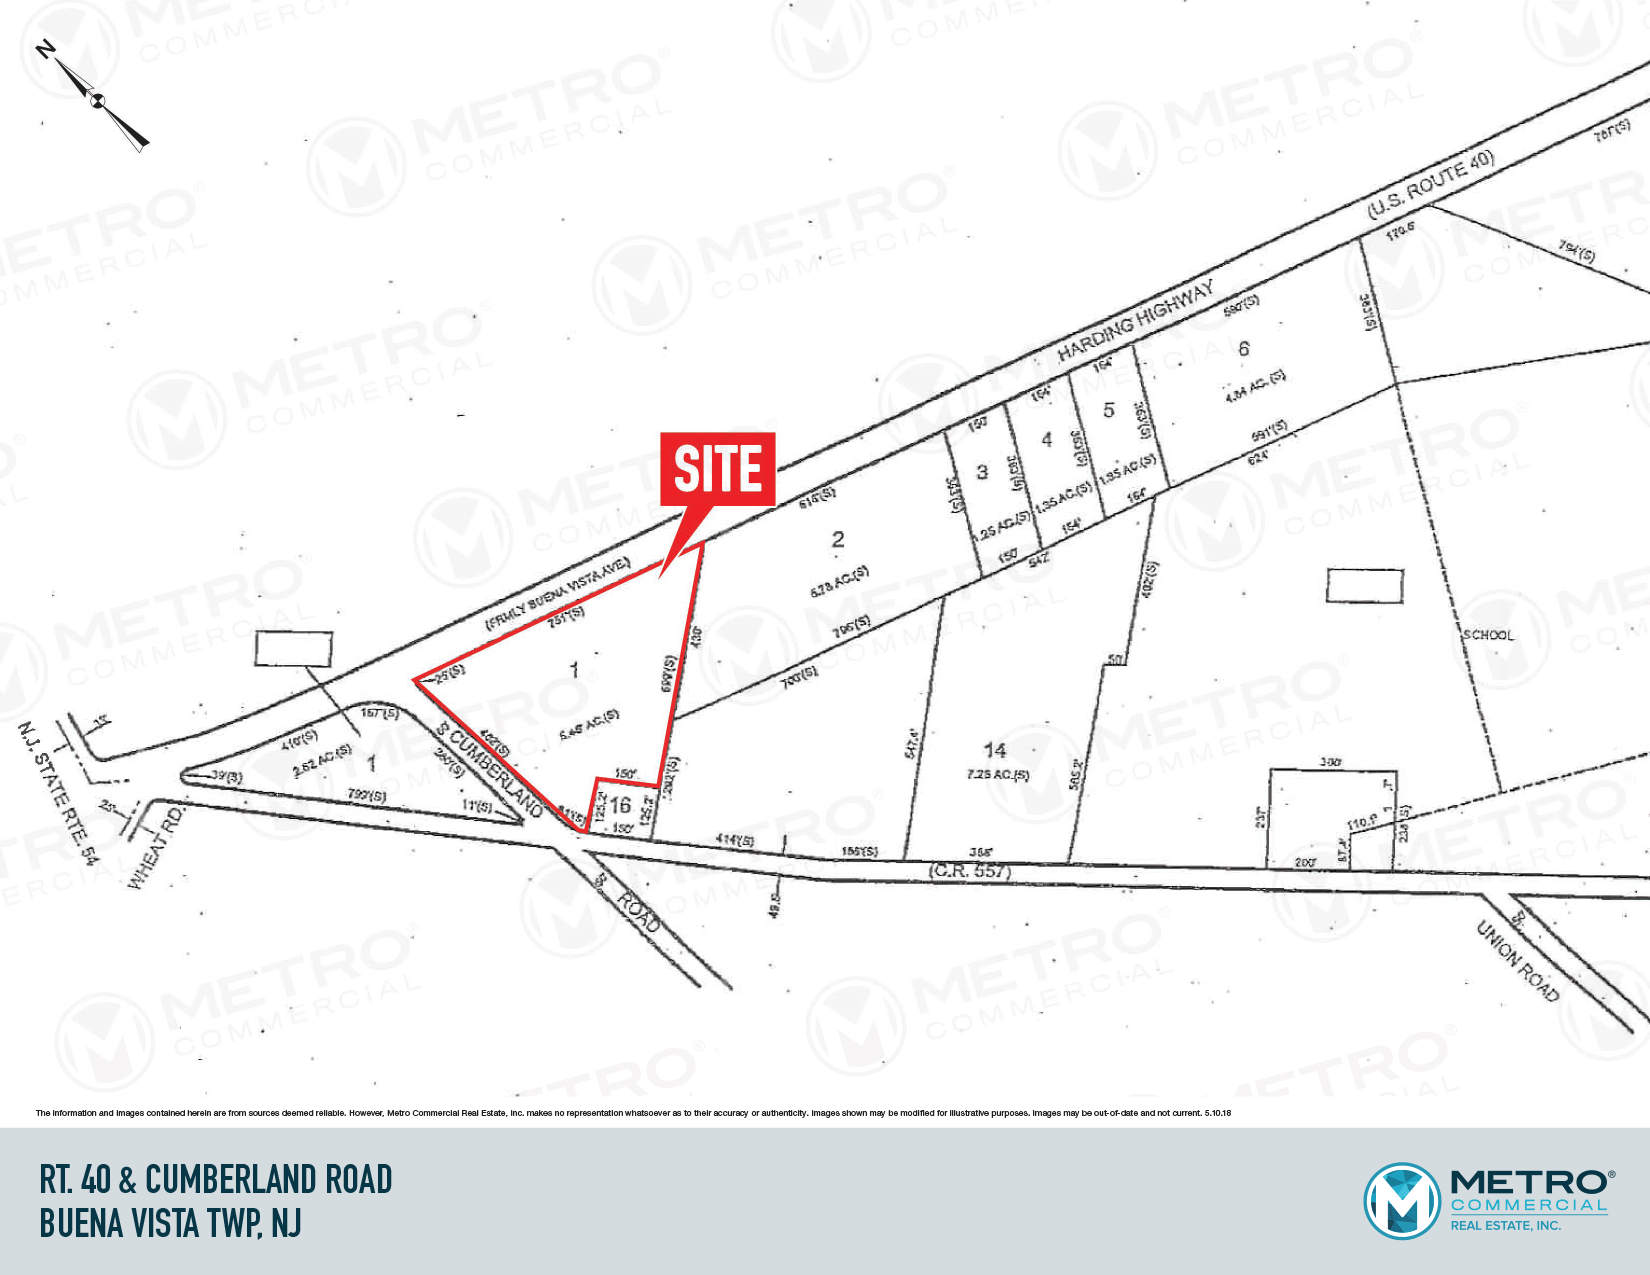 Route 40 & Cumberland Road – Metro Commercial